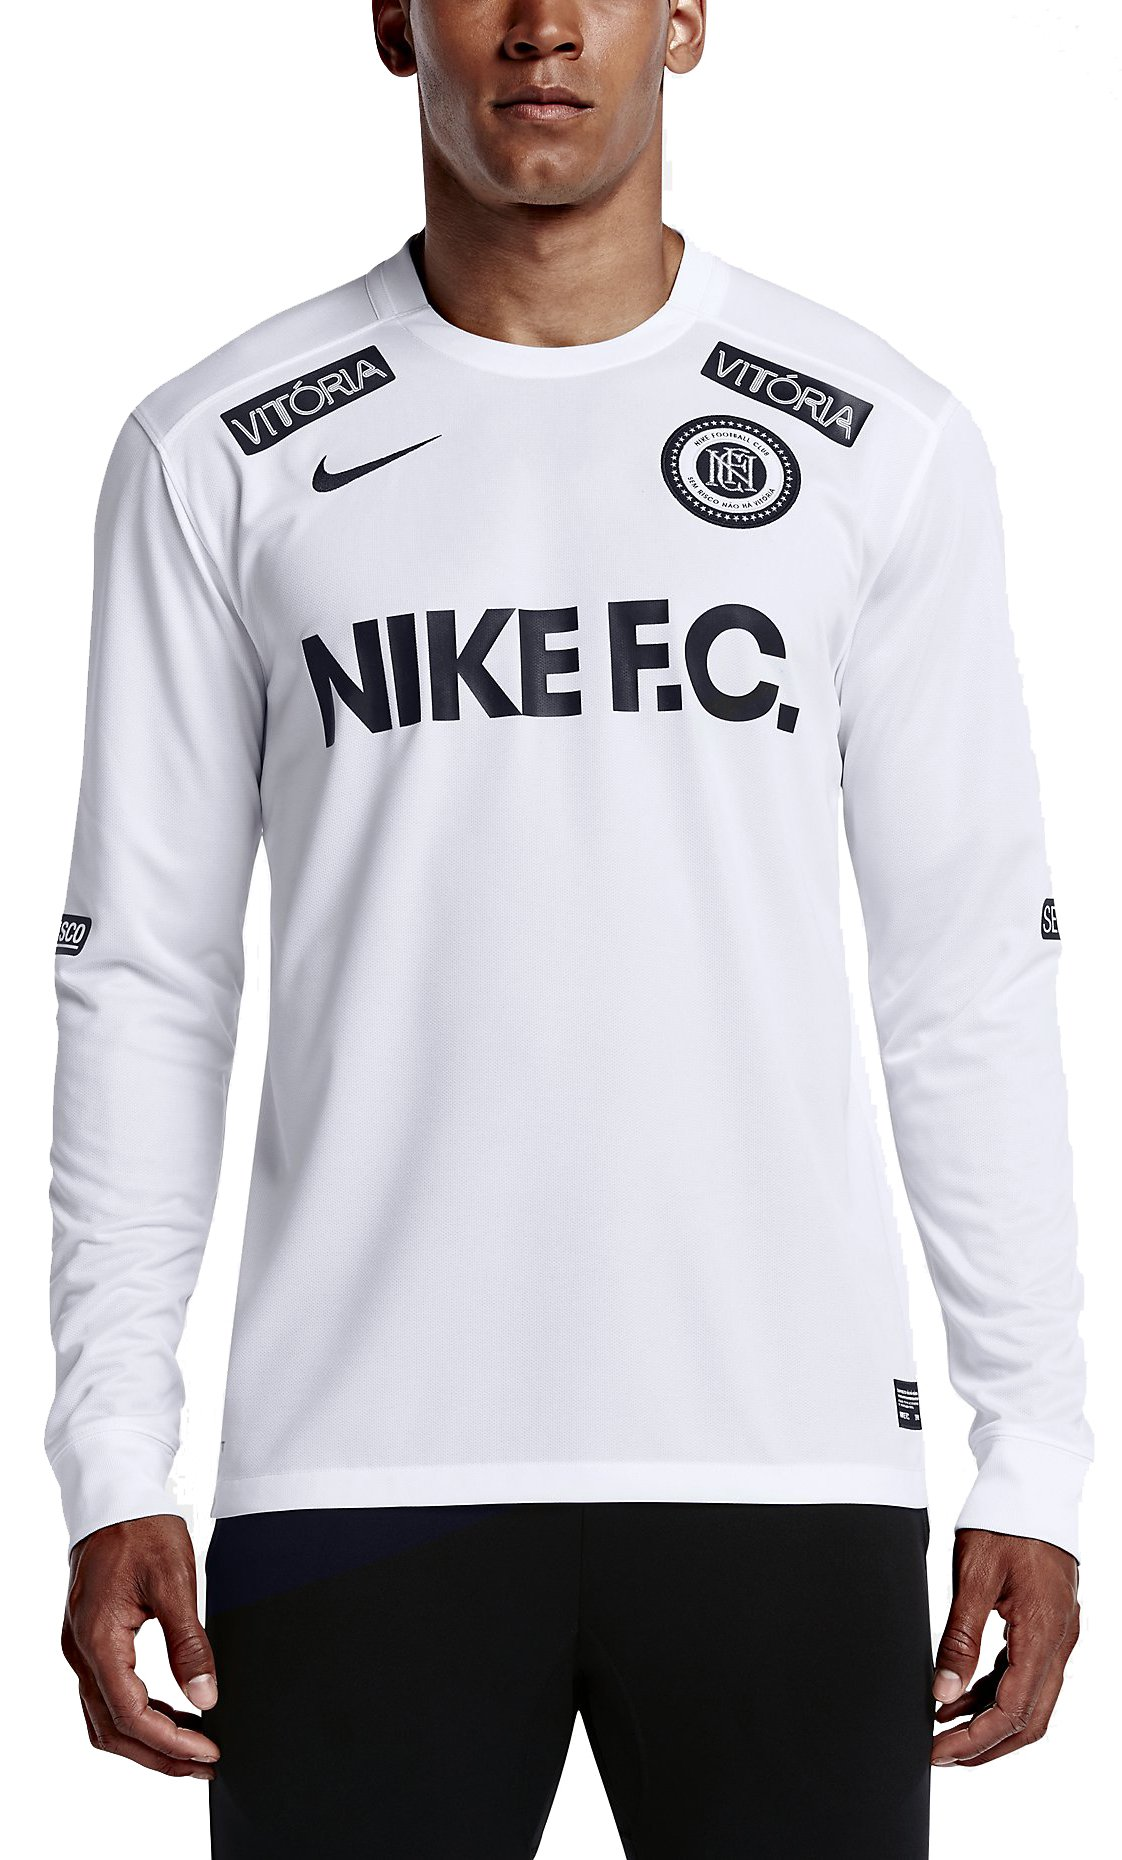 Nike F.C. Graphic Long Sleeve